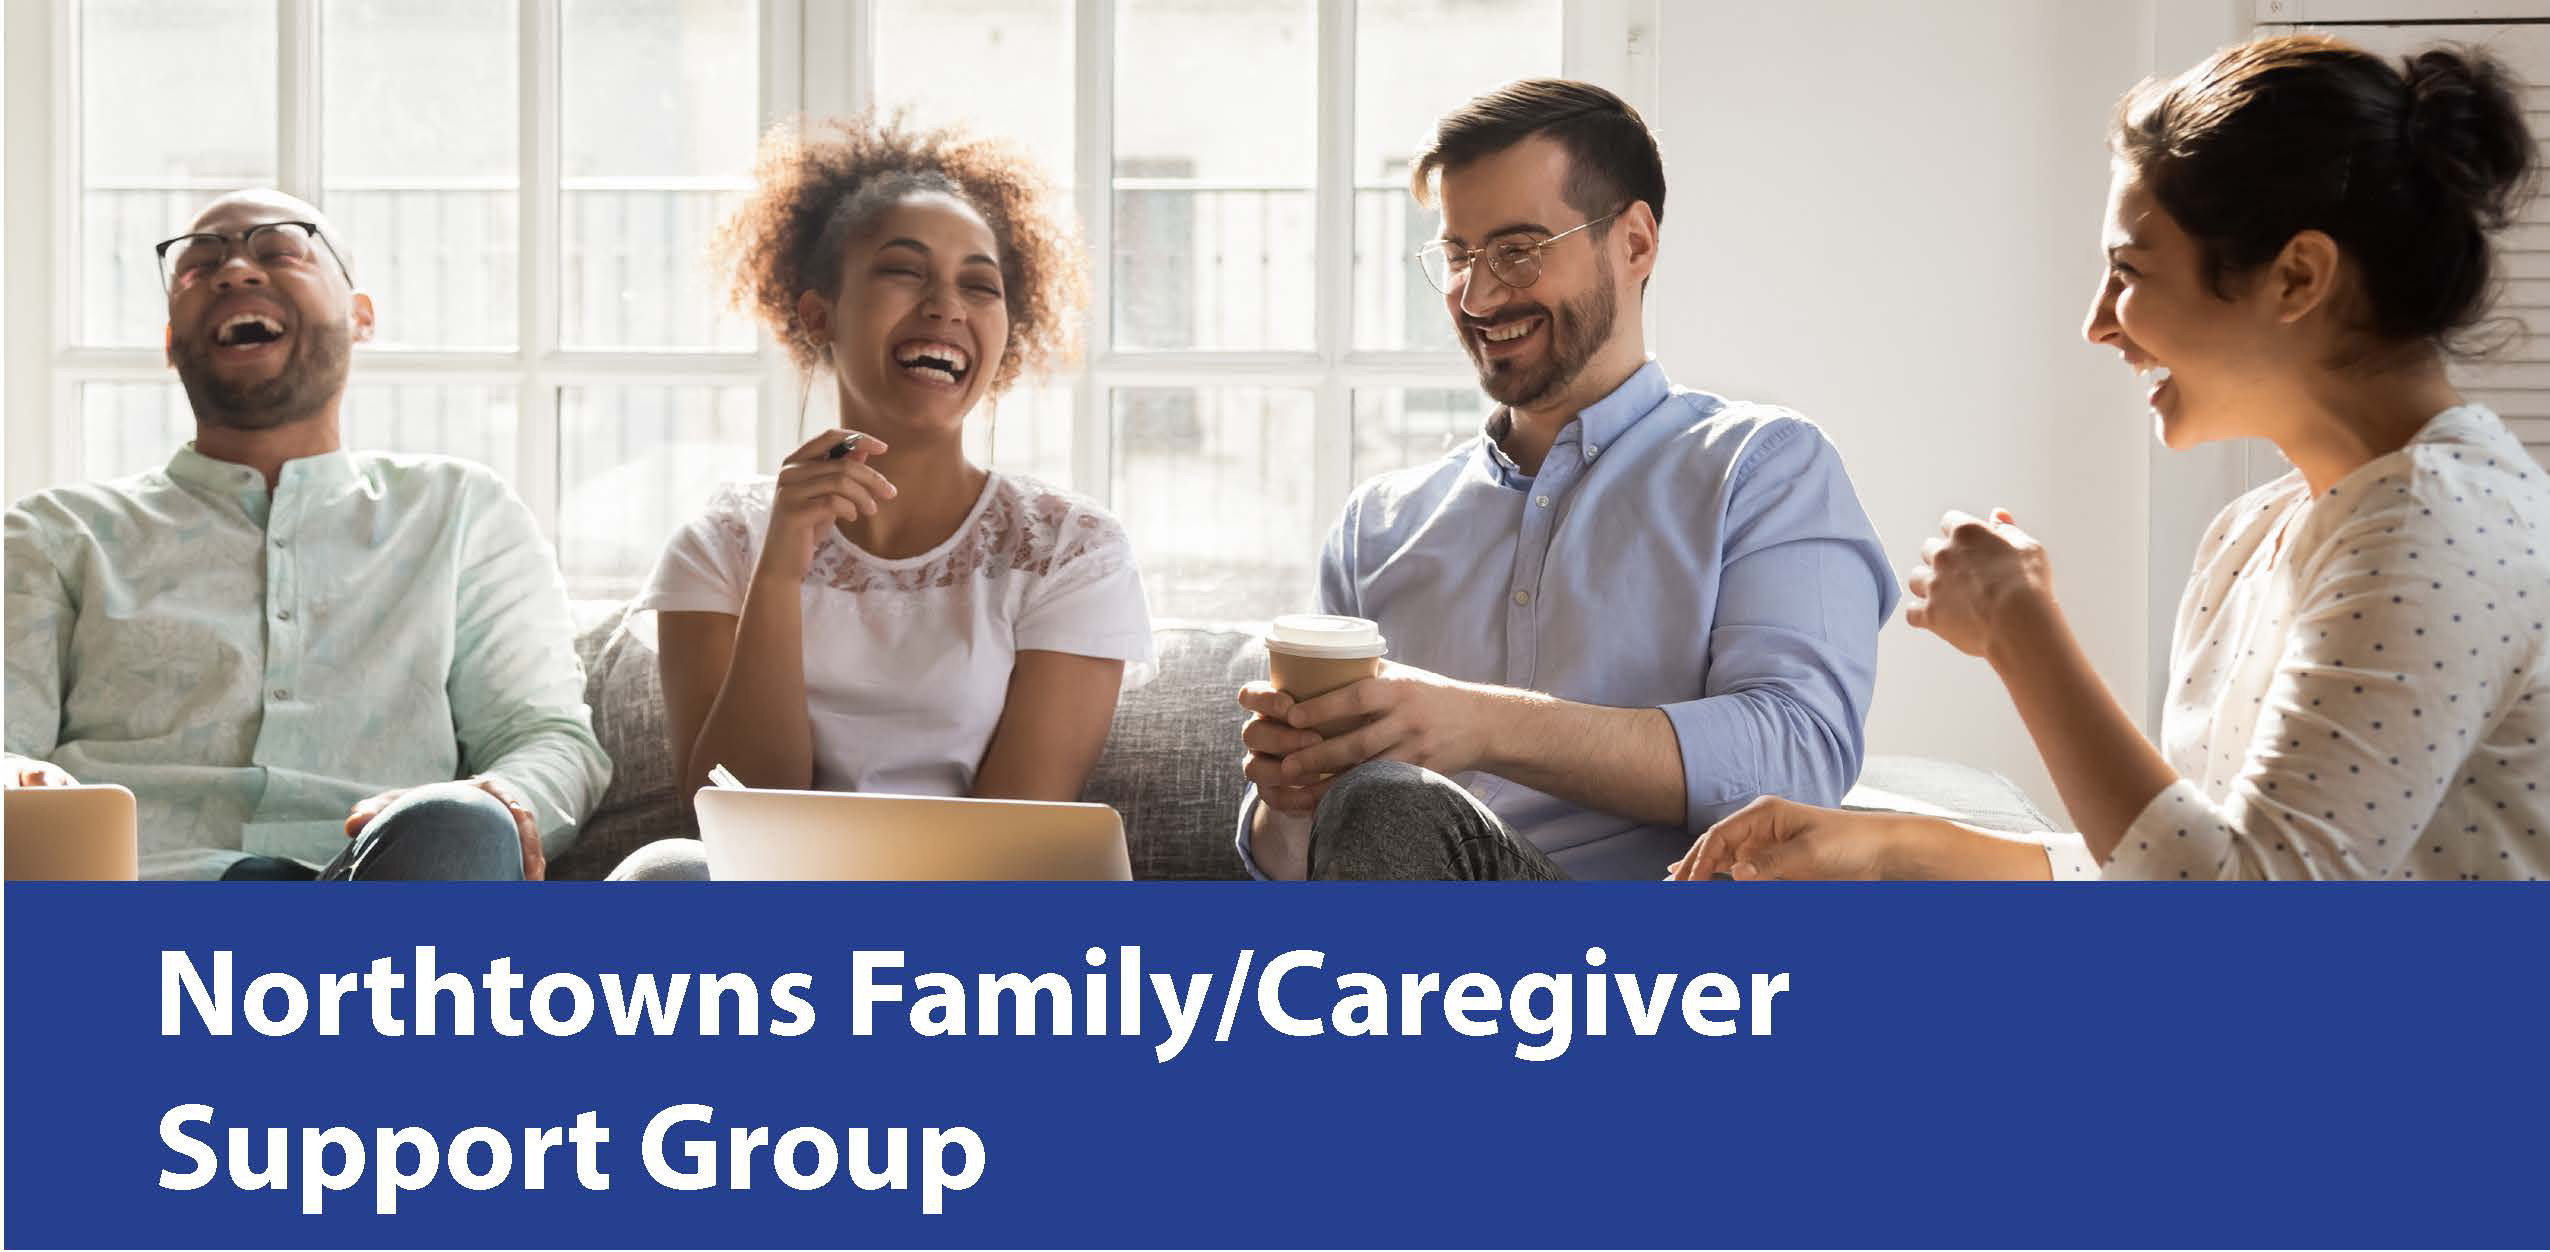 Photo of four people talking and laughing with the words Northtowns Family/Caregiver Support Group underneath